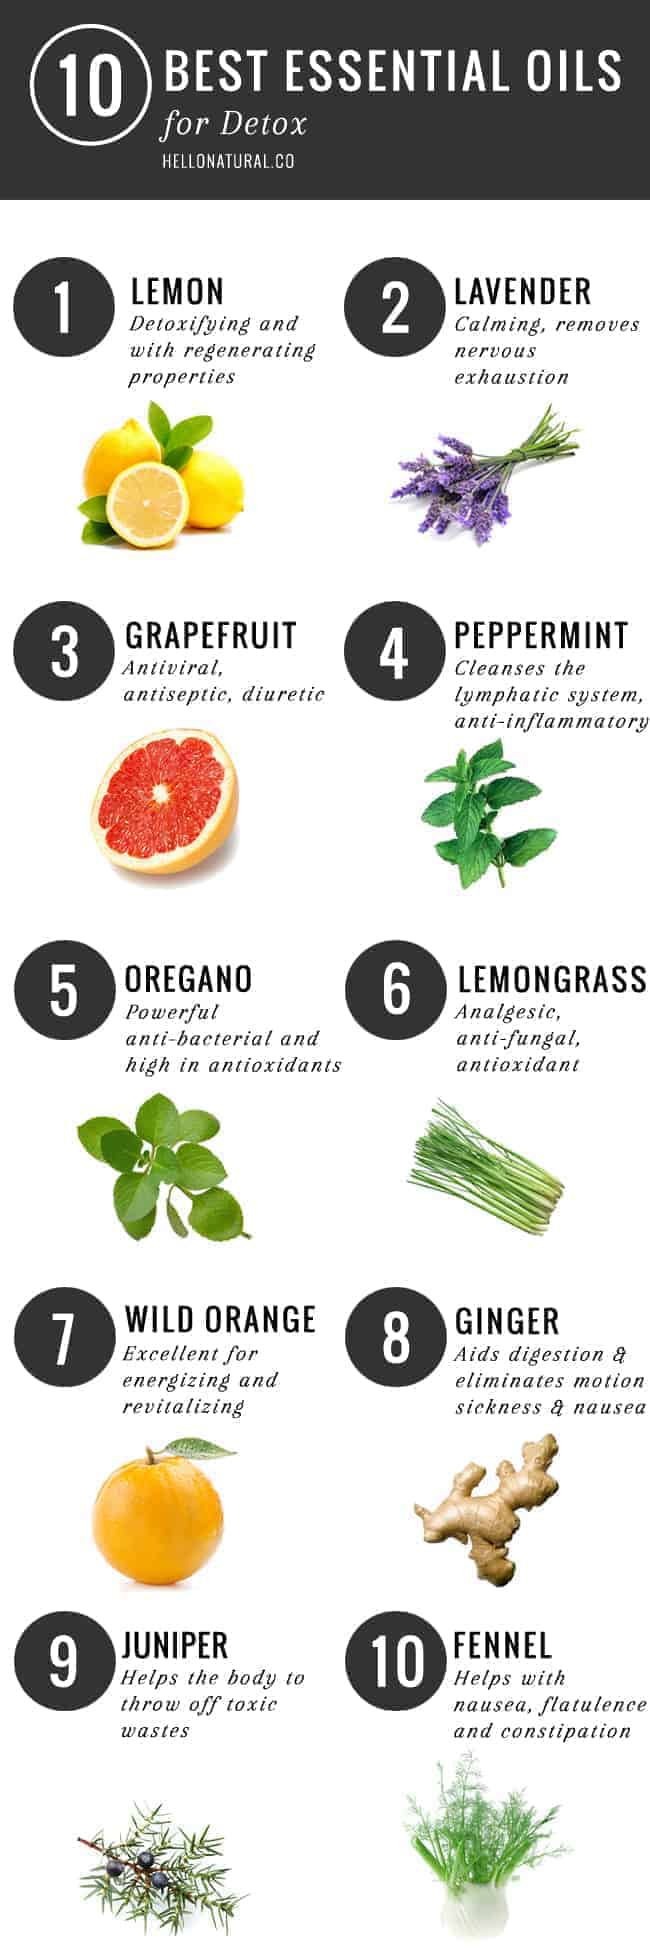 10 Best Essential Oils for Detox | HelloGlow.co